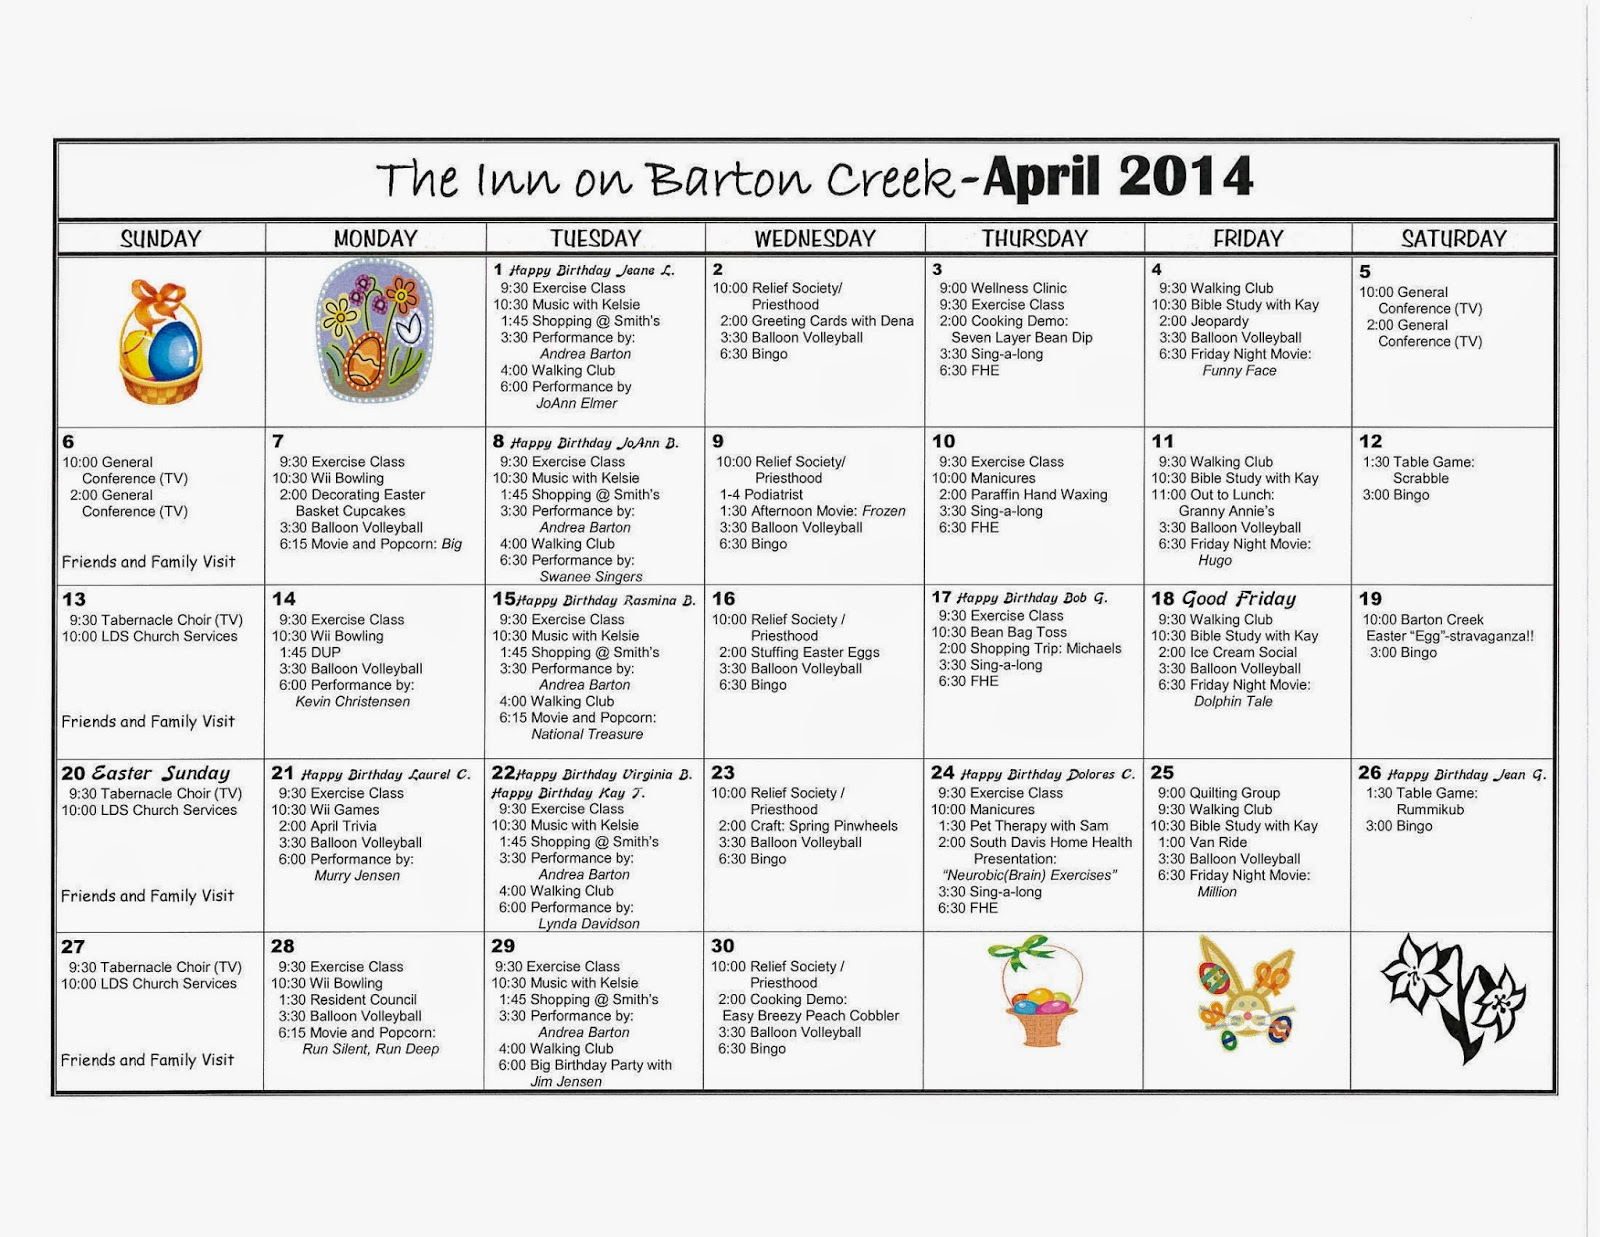 barton creek assisted living activities calendar april 2014